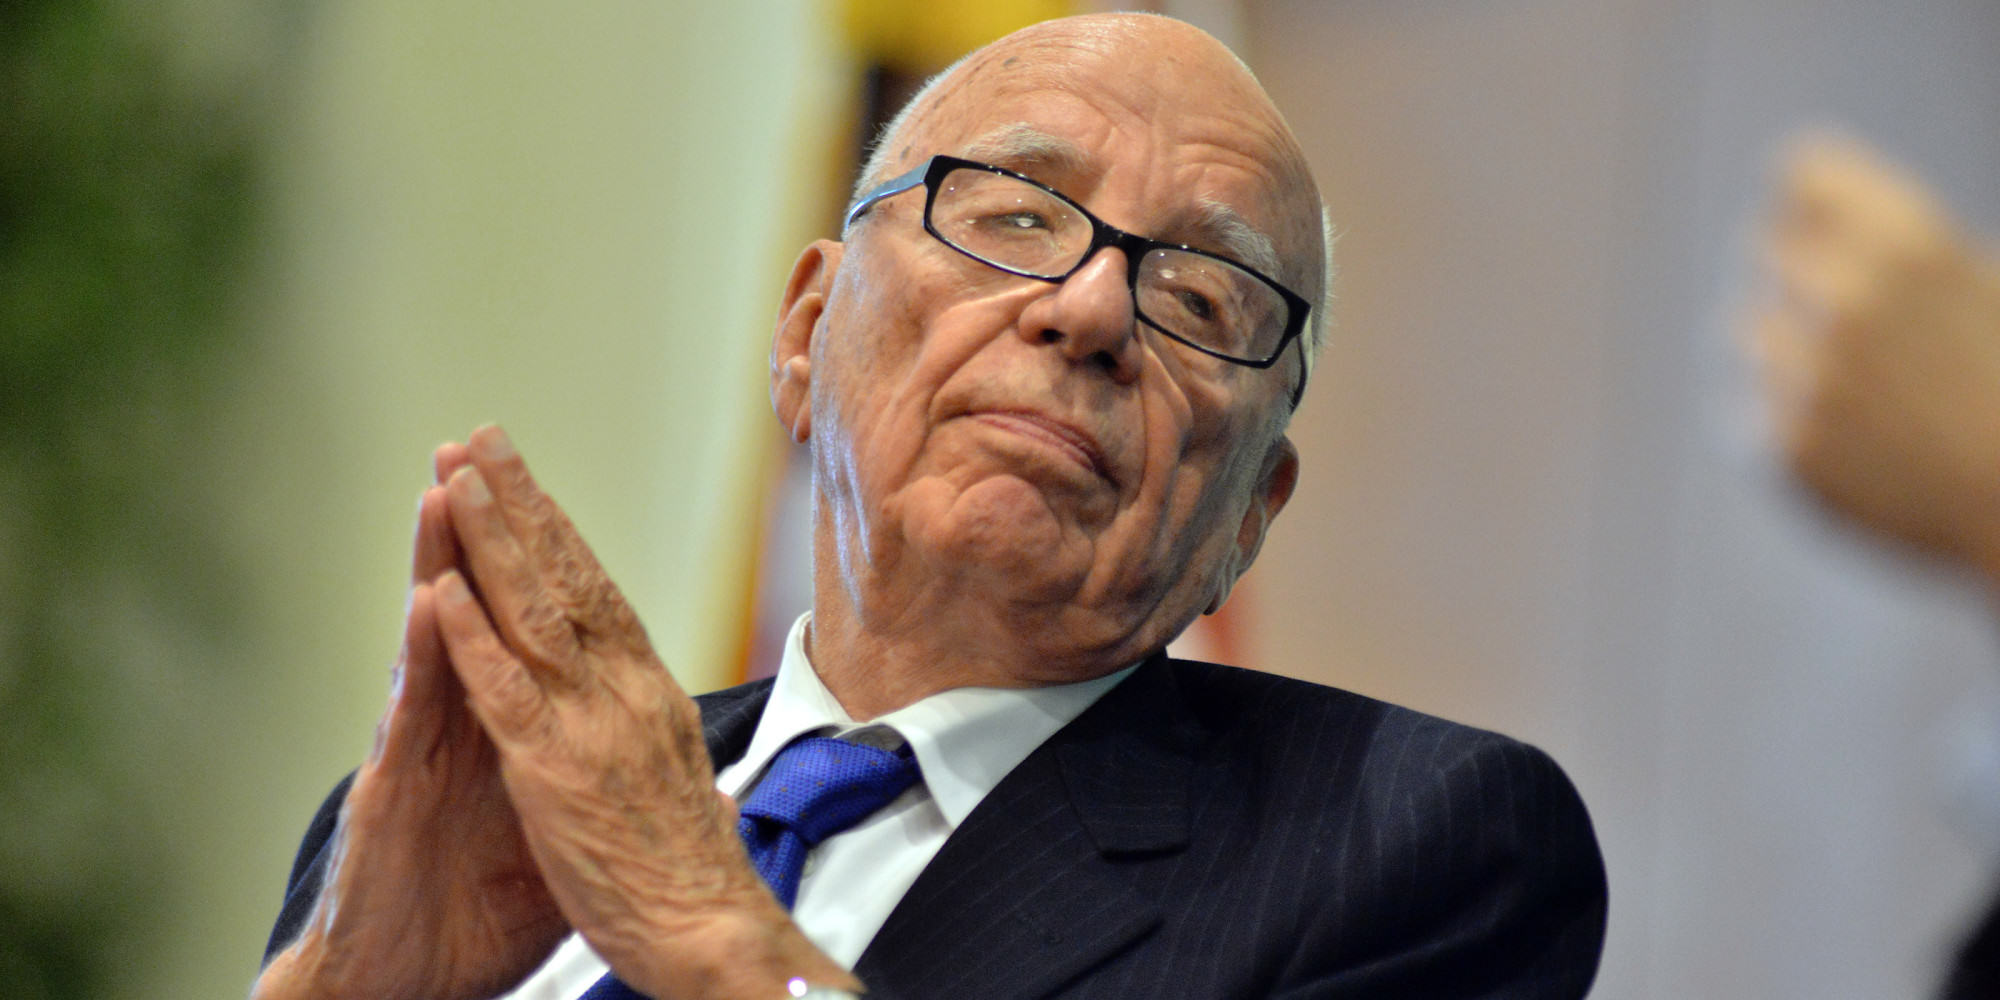 o RUPERT MURDOCH facebook Rupert Murdoch Stepping Down As CEO Of 21st Century Fox